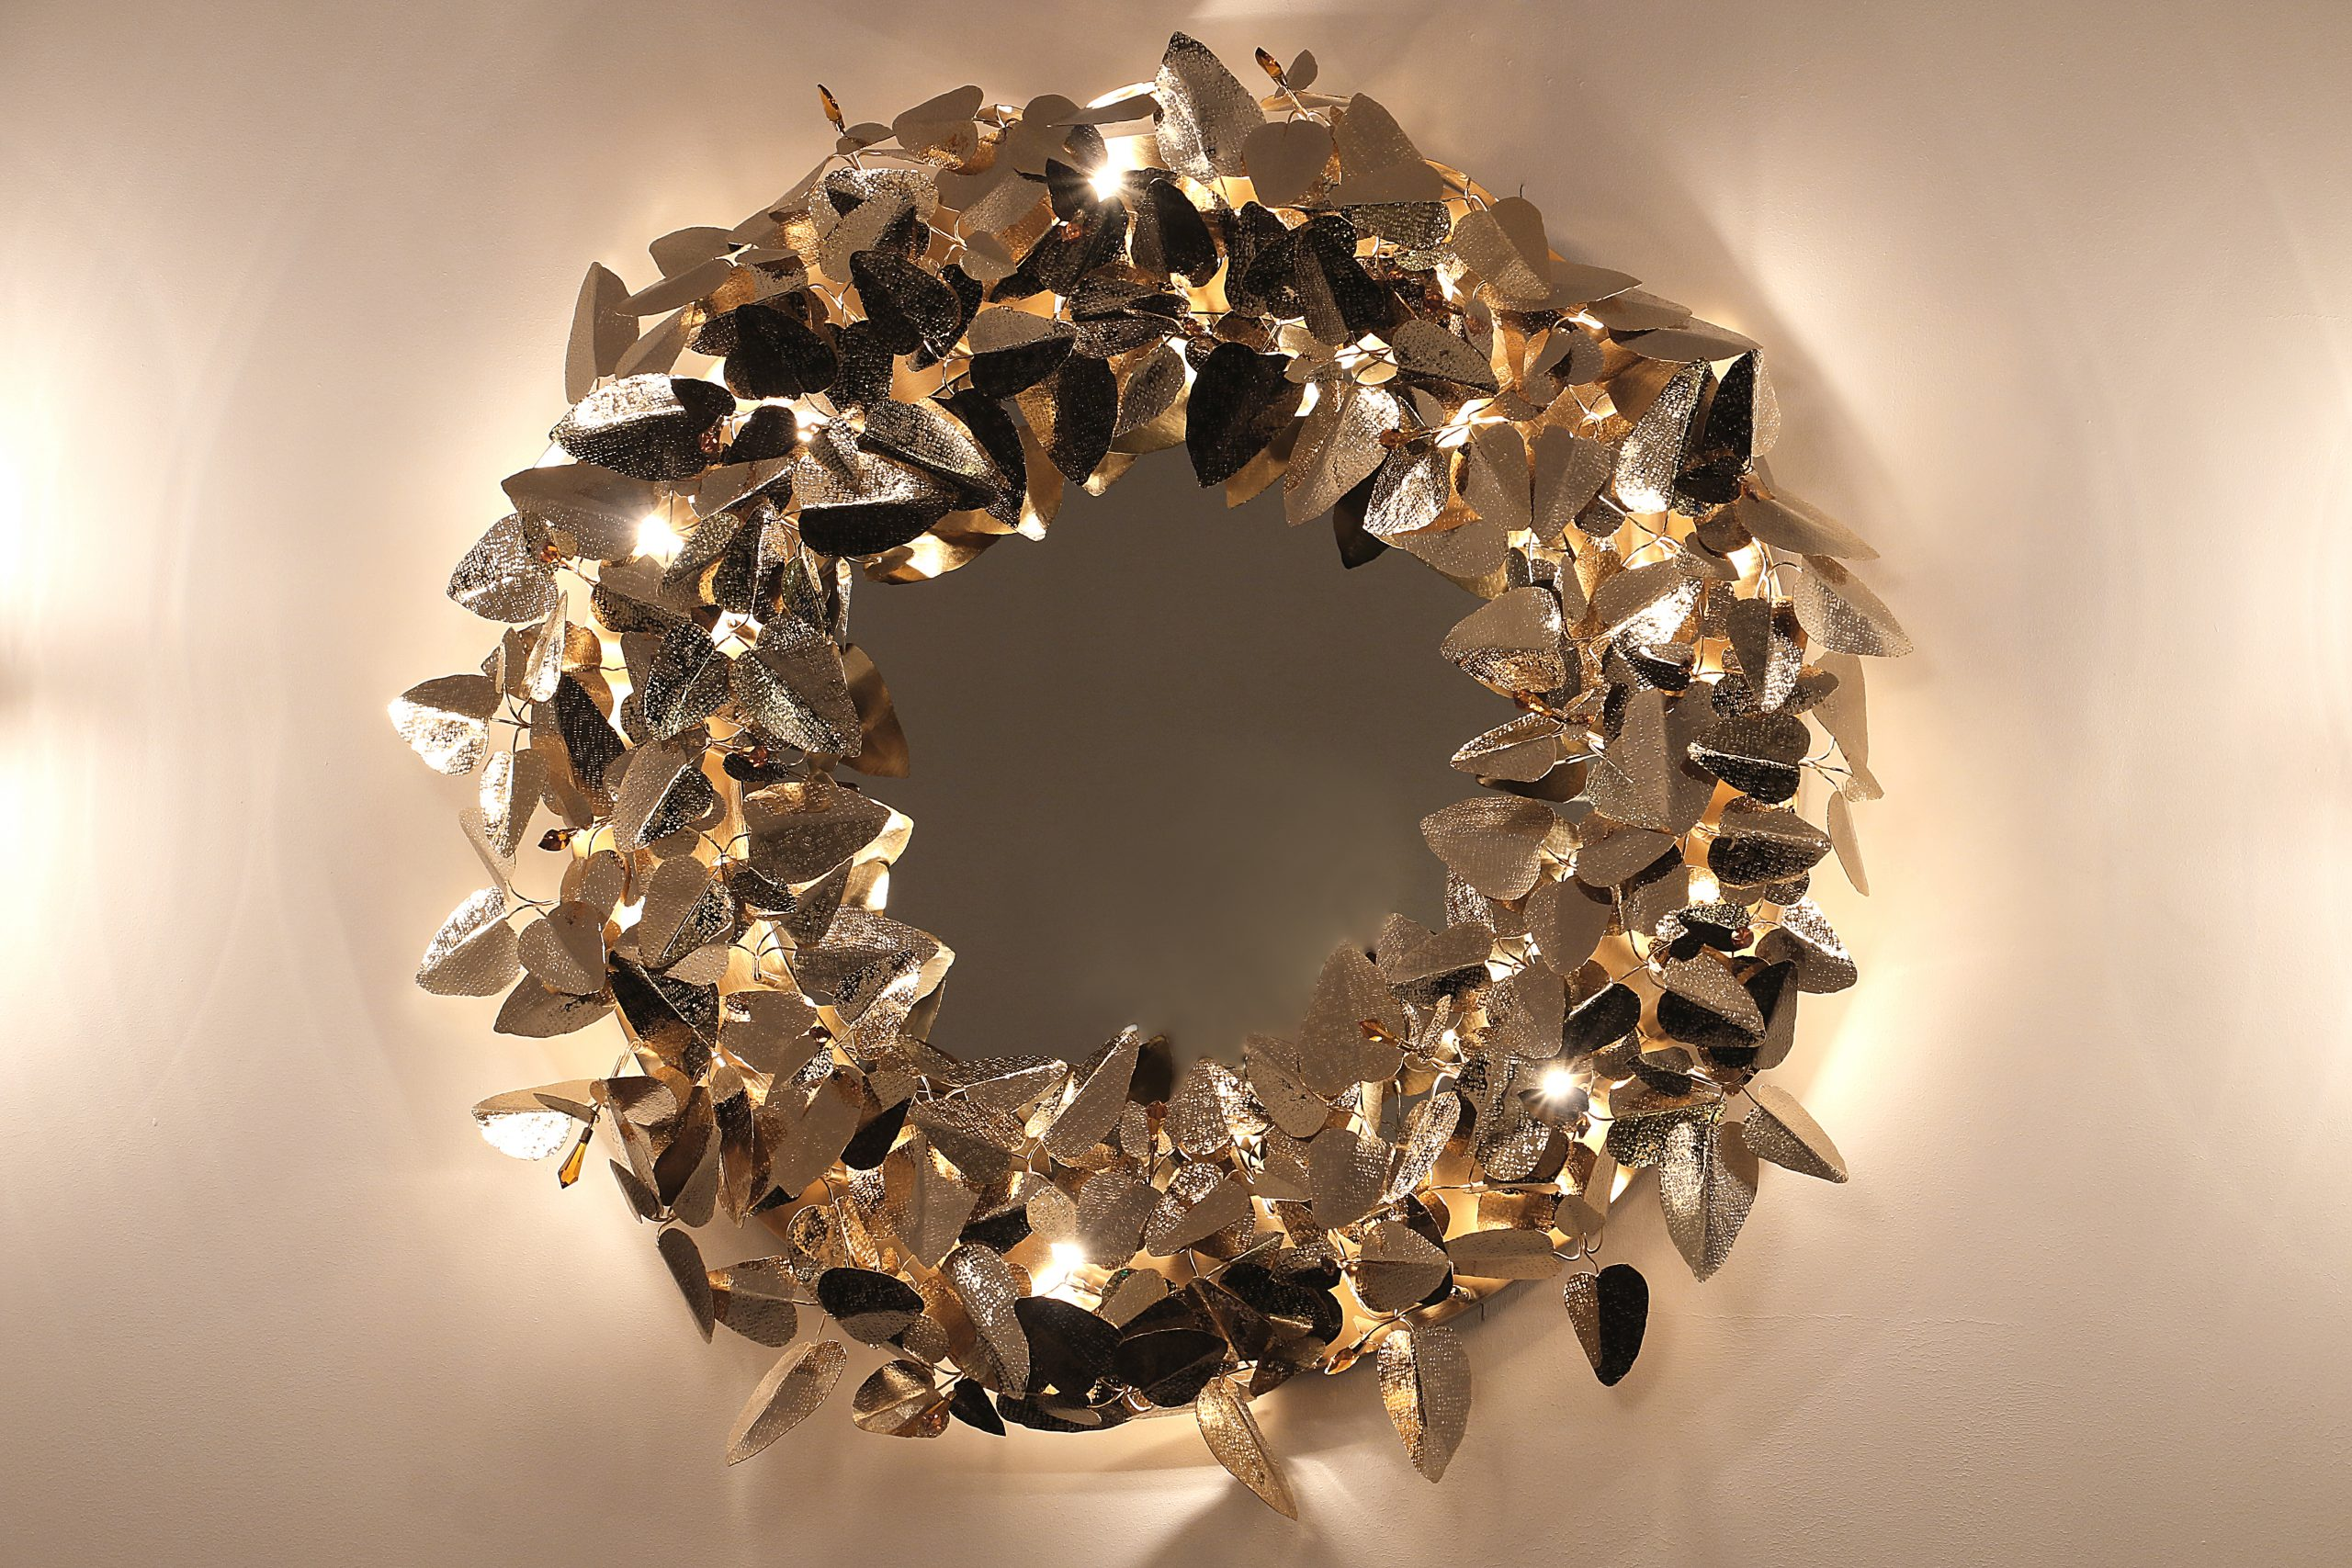 interior design interior design Interior design ideas for the fall: Must have pieces ready to ship! mcqueen wall light mirror 02 scaled